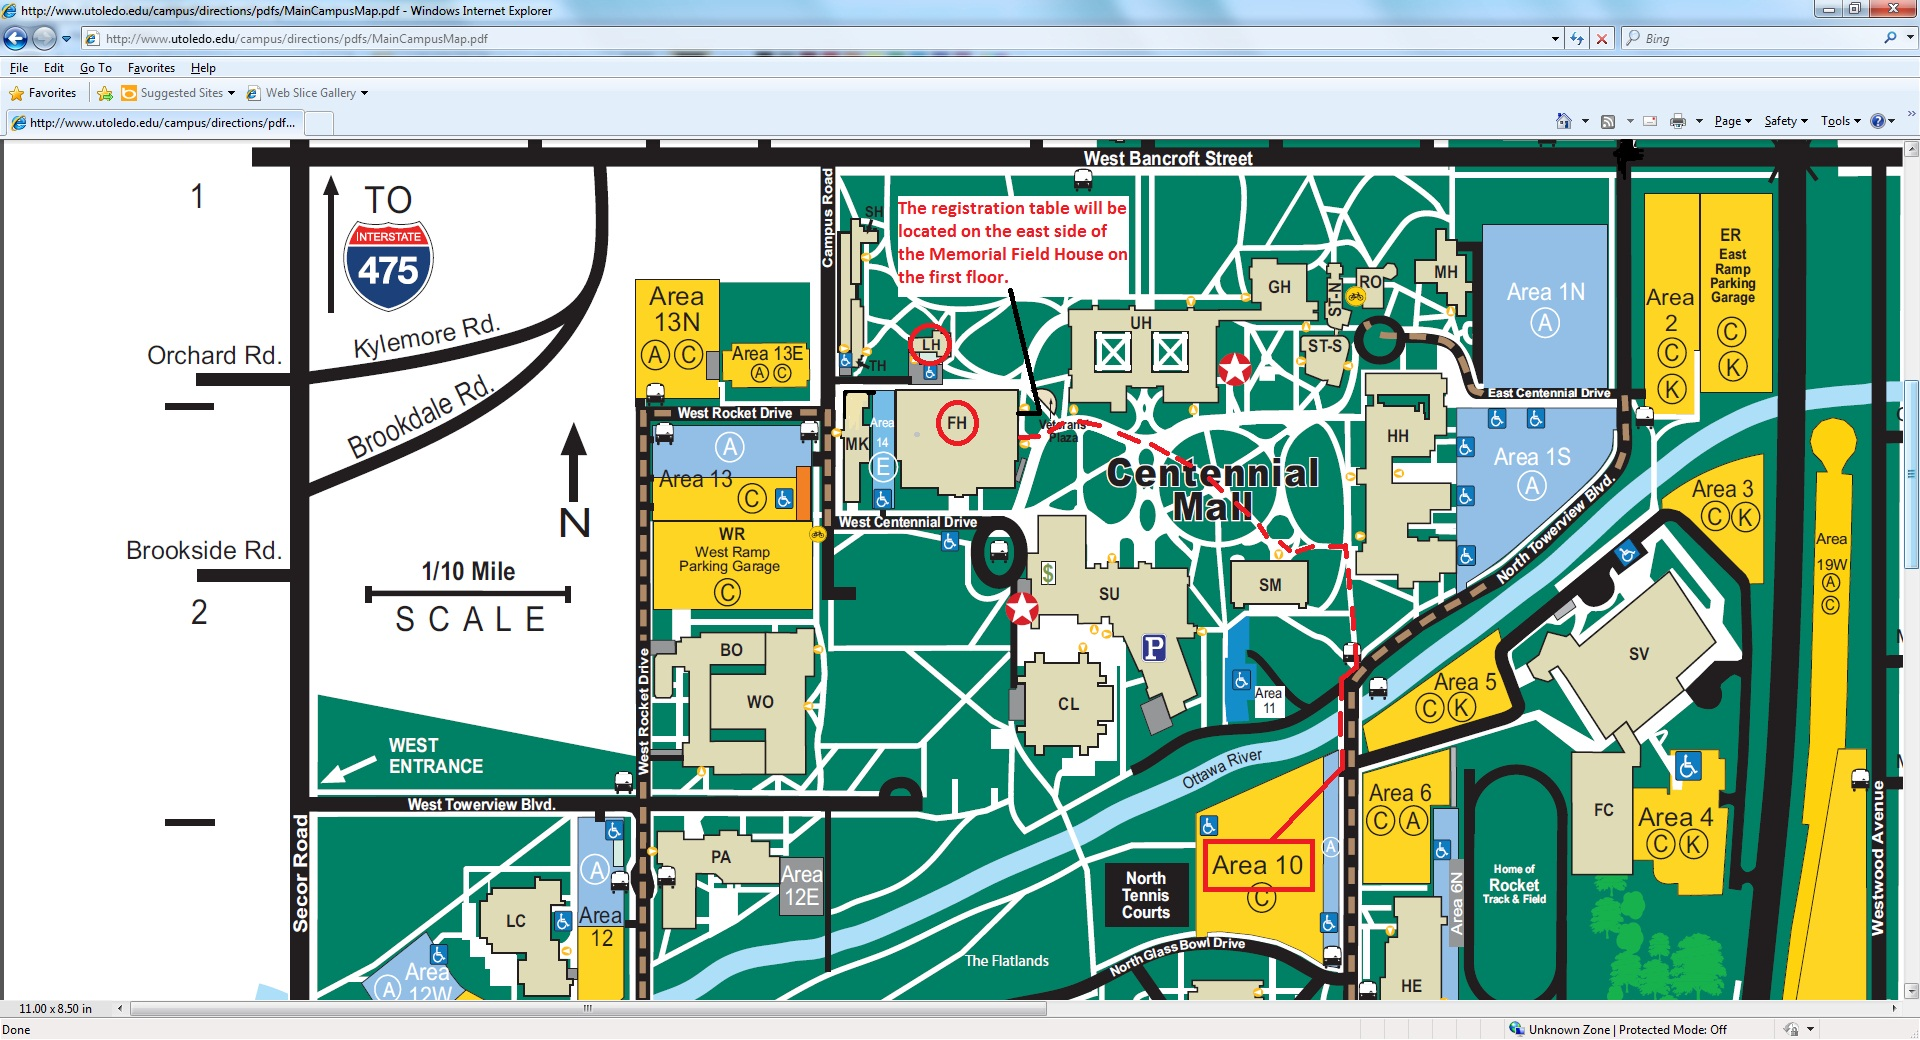 Wittenberg University Campus Map 86203 | LOADTVE